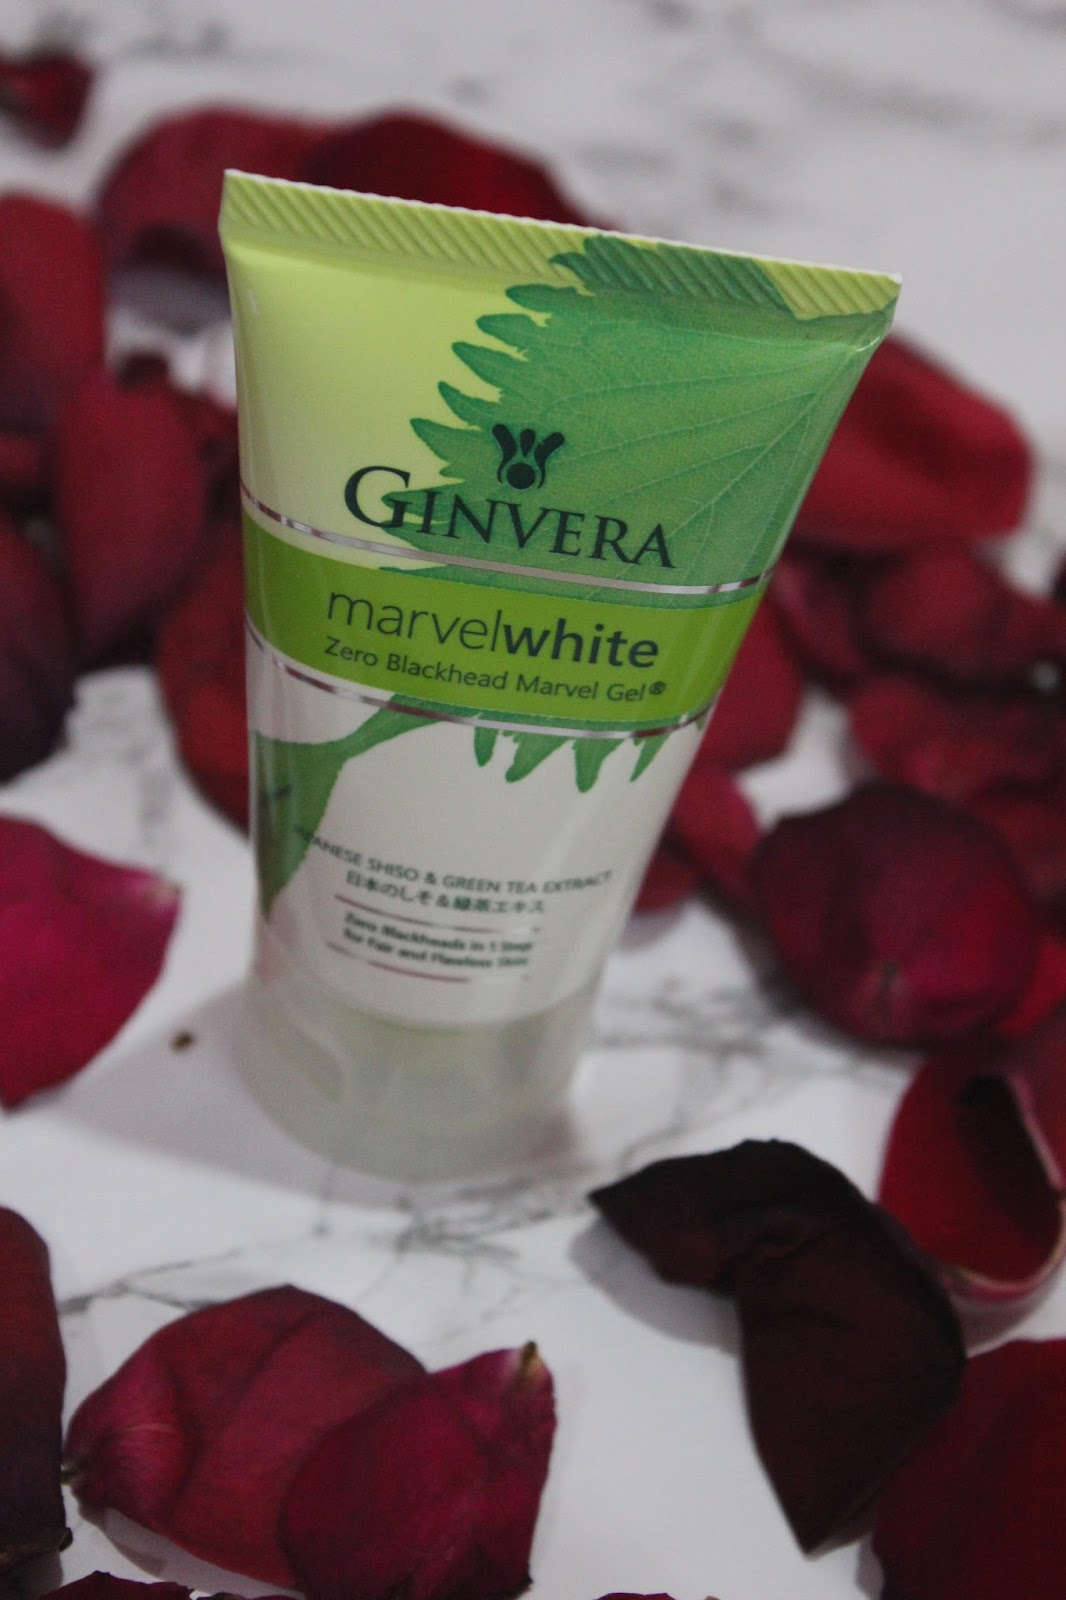 Ginvera Marvel White Zero Blackhead Marvel Gel